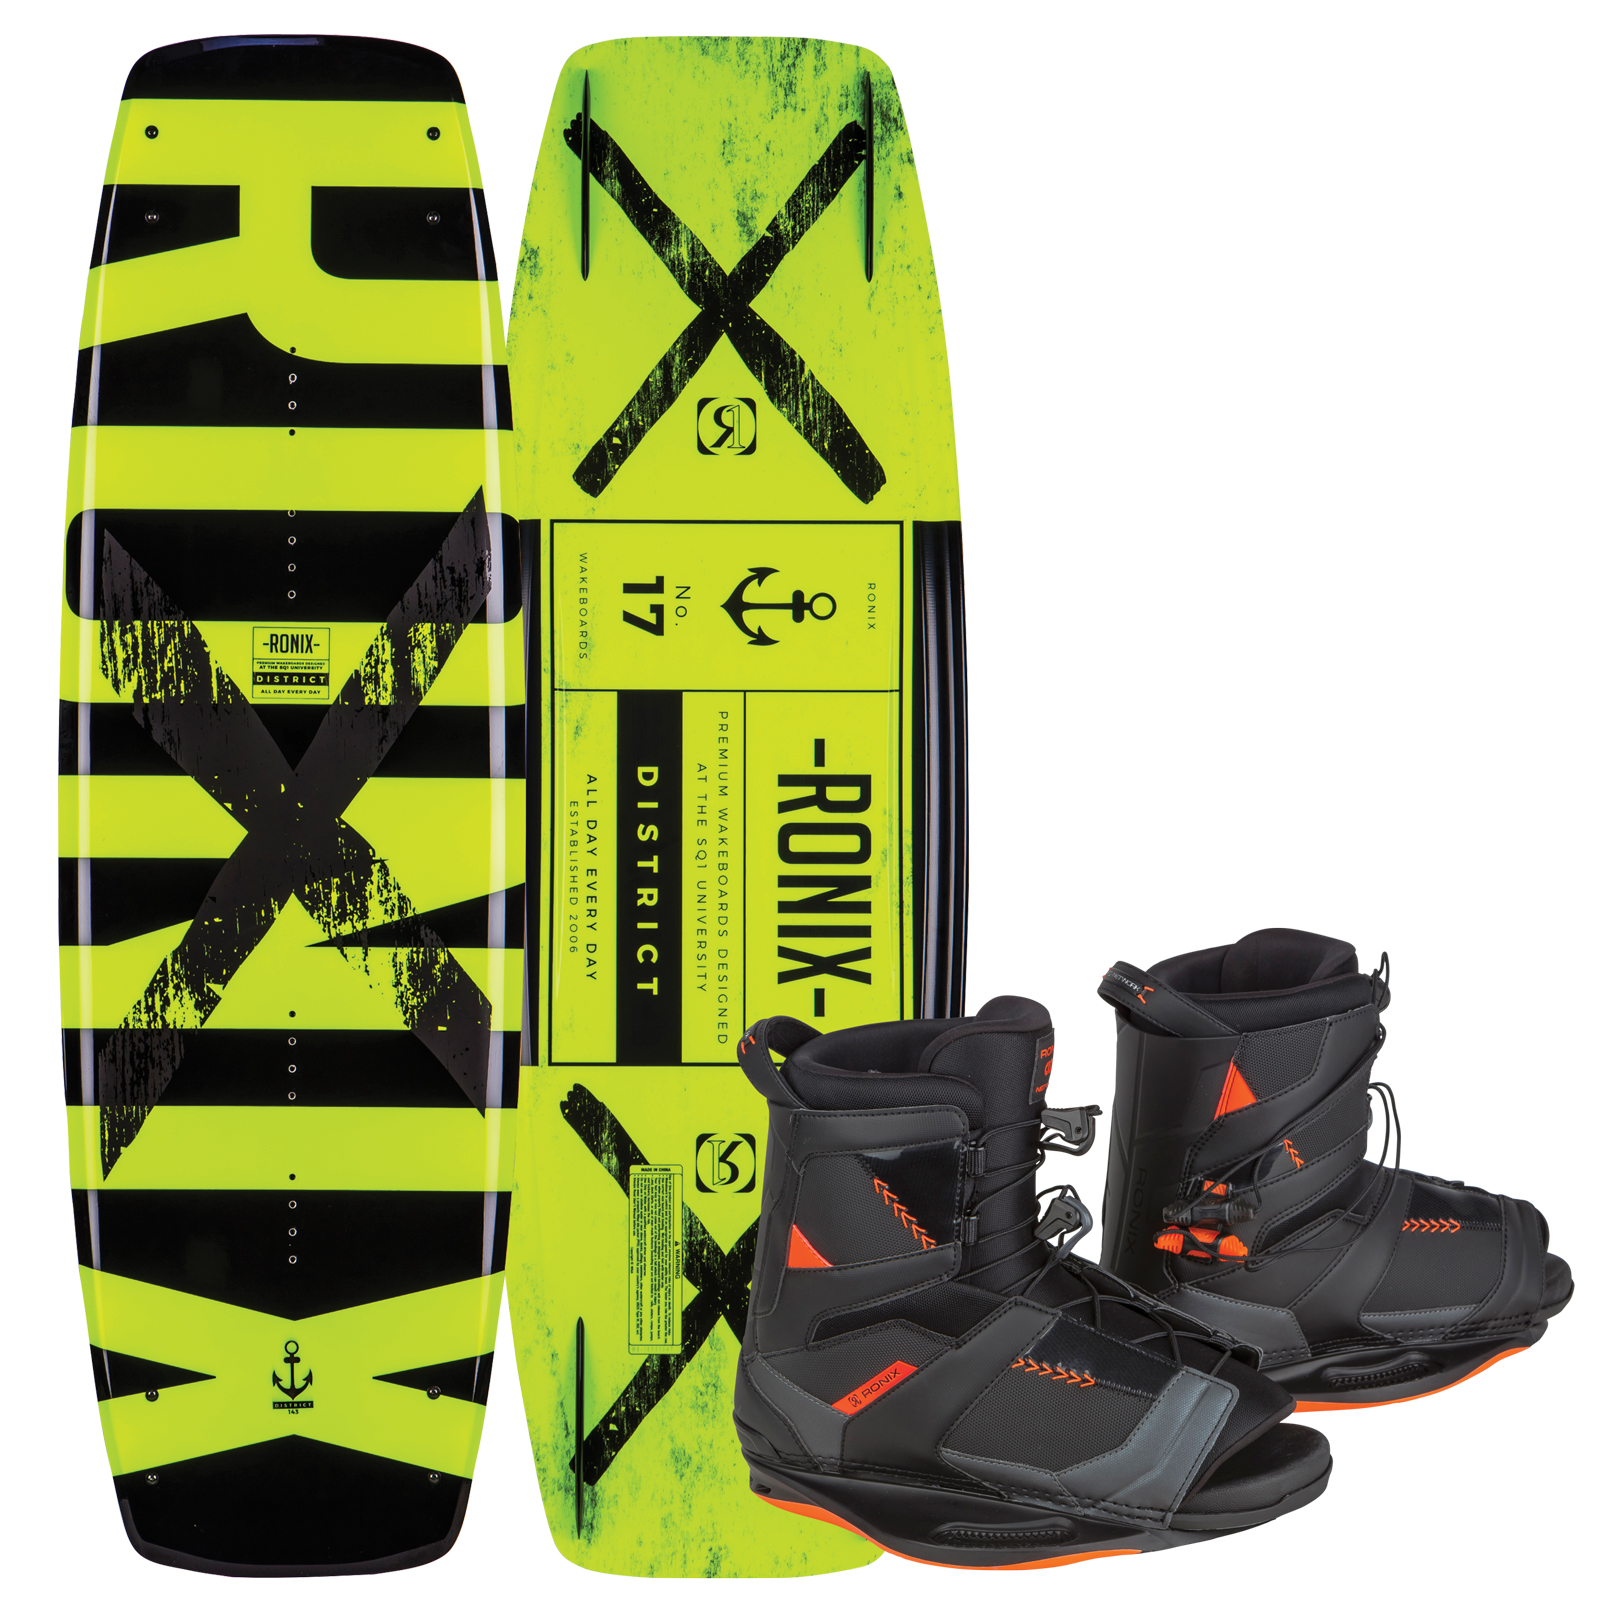 DISTRICT 143 W/ NETWORK PACKAGE RONIX 2017